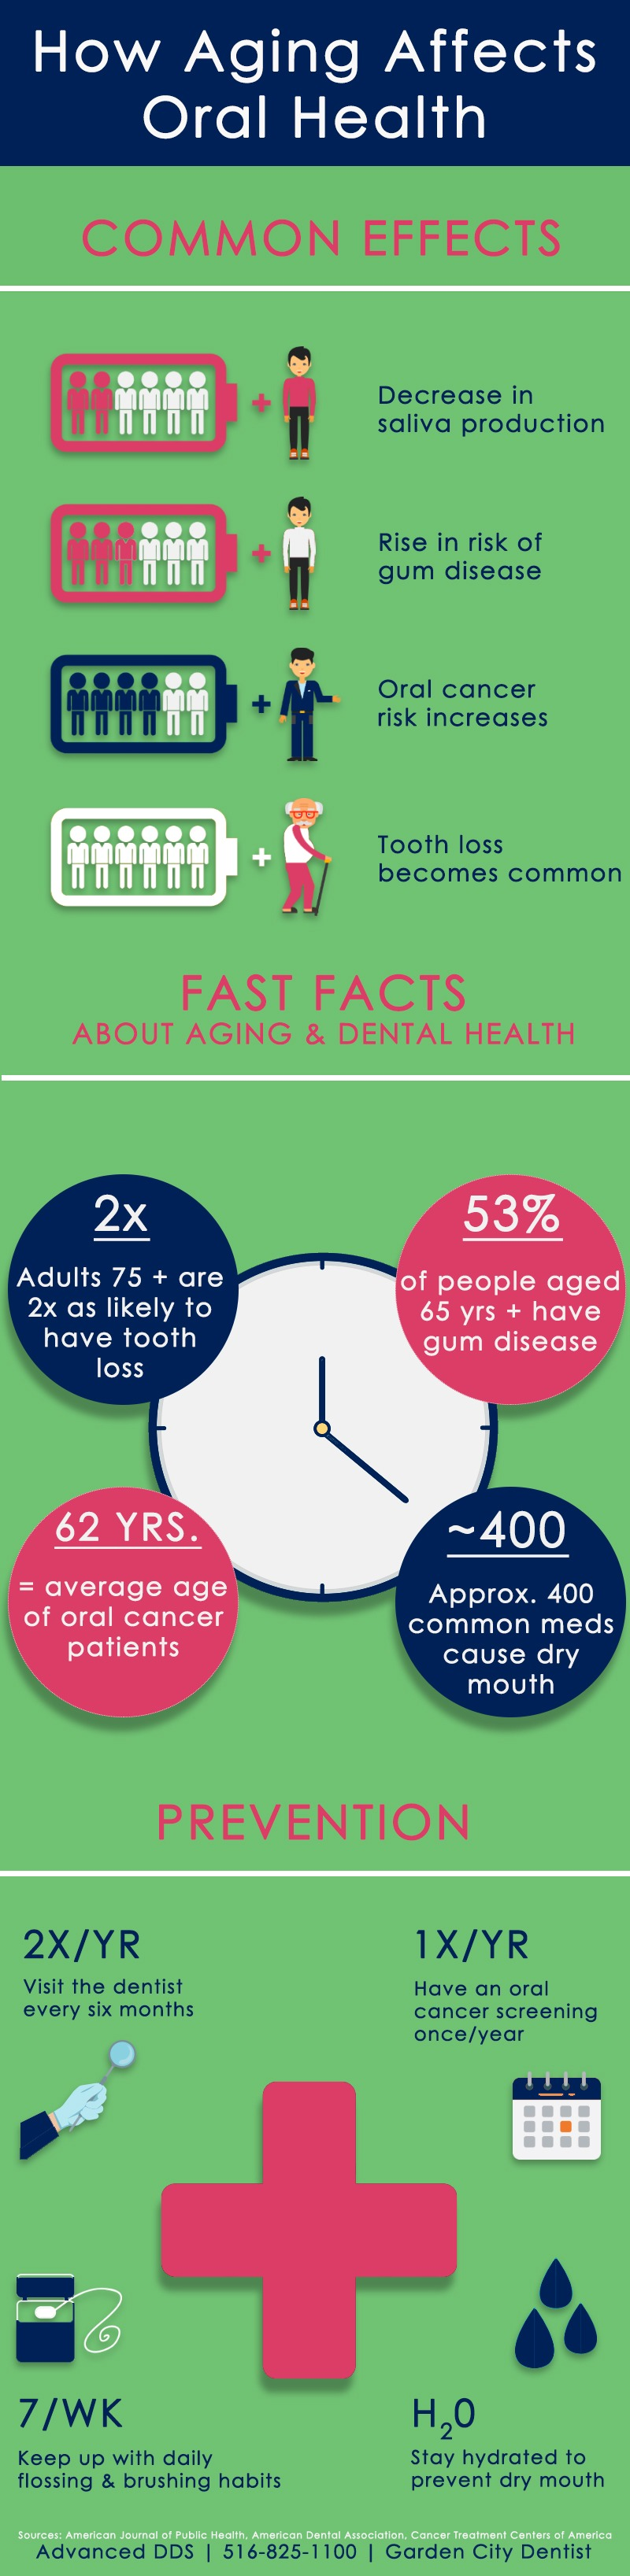 Aging and Dental Health Facts